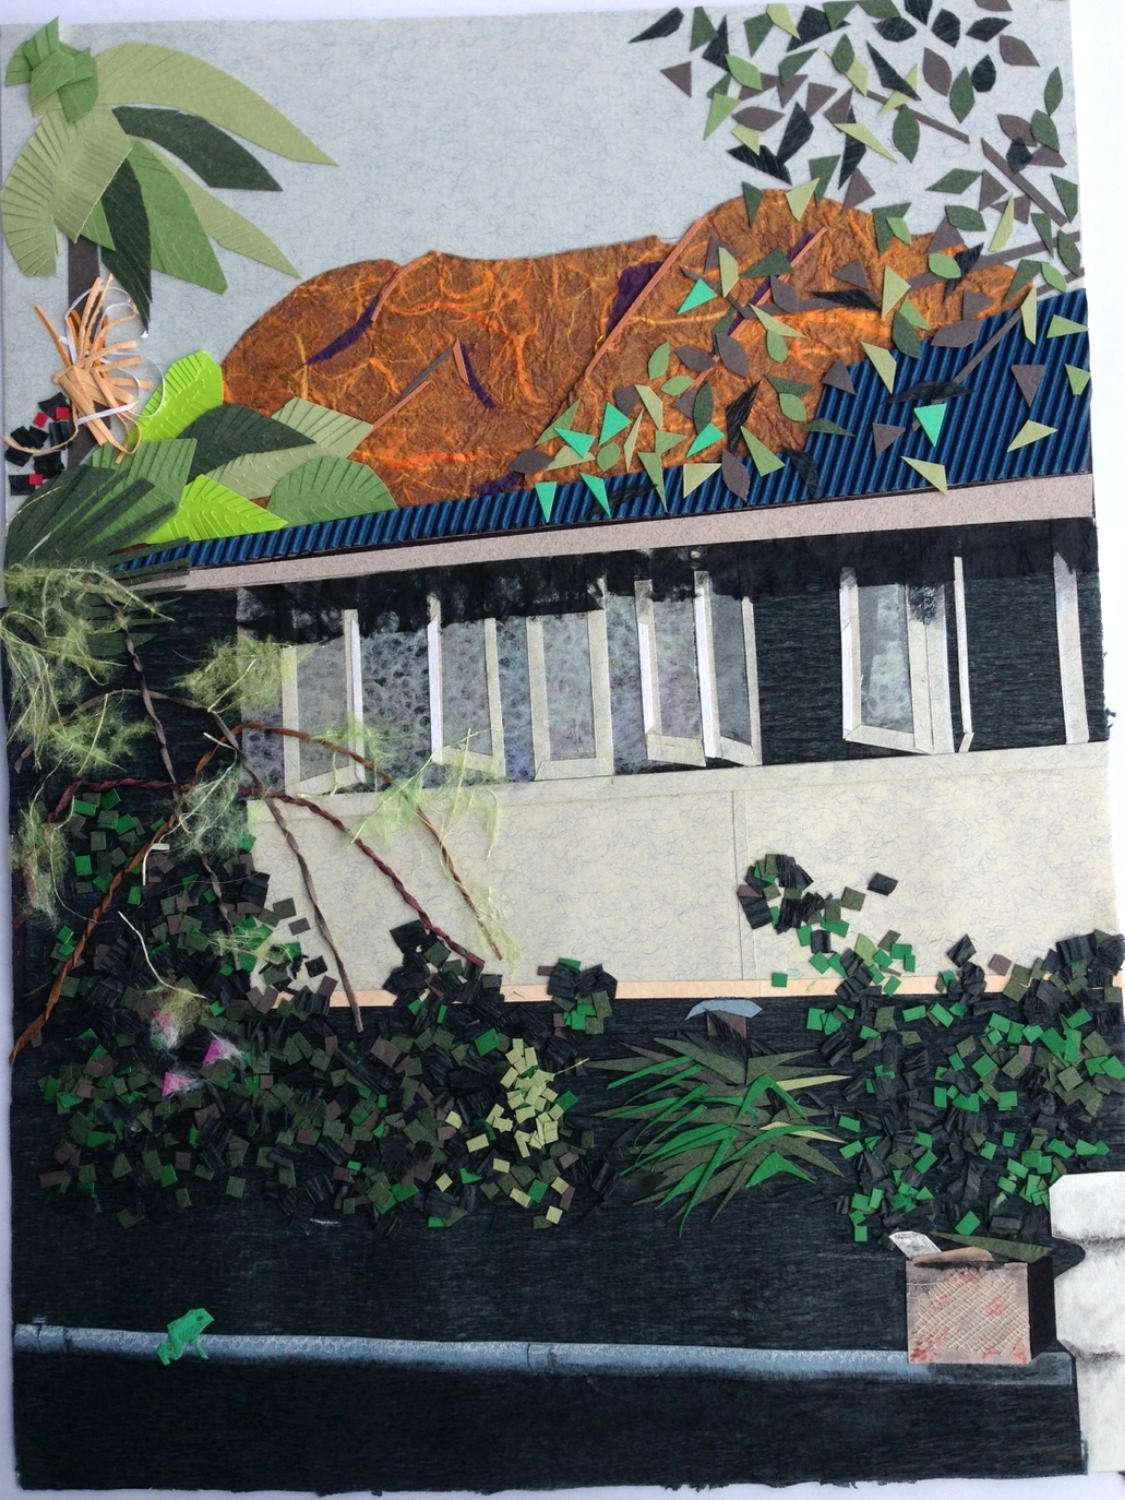 At My House . Paper cuts andoriginal collage for children'sbook illustration.2001 © Ida Montague  Pictured: Castle Hill, Townsville, North Queensland.